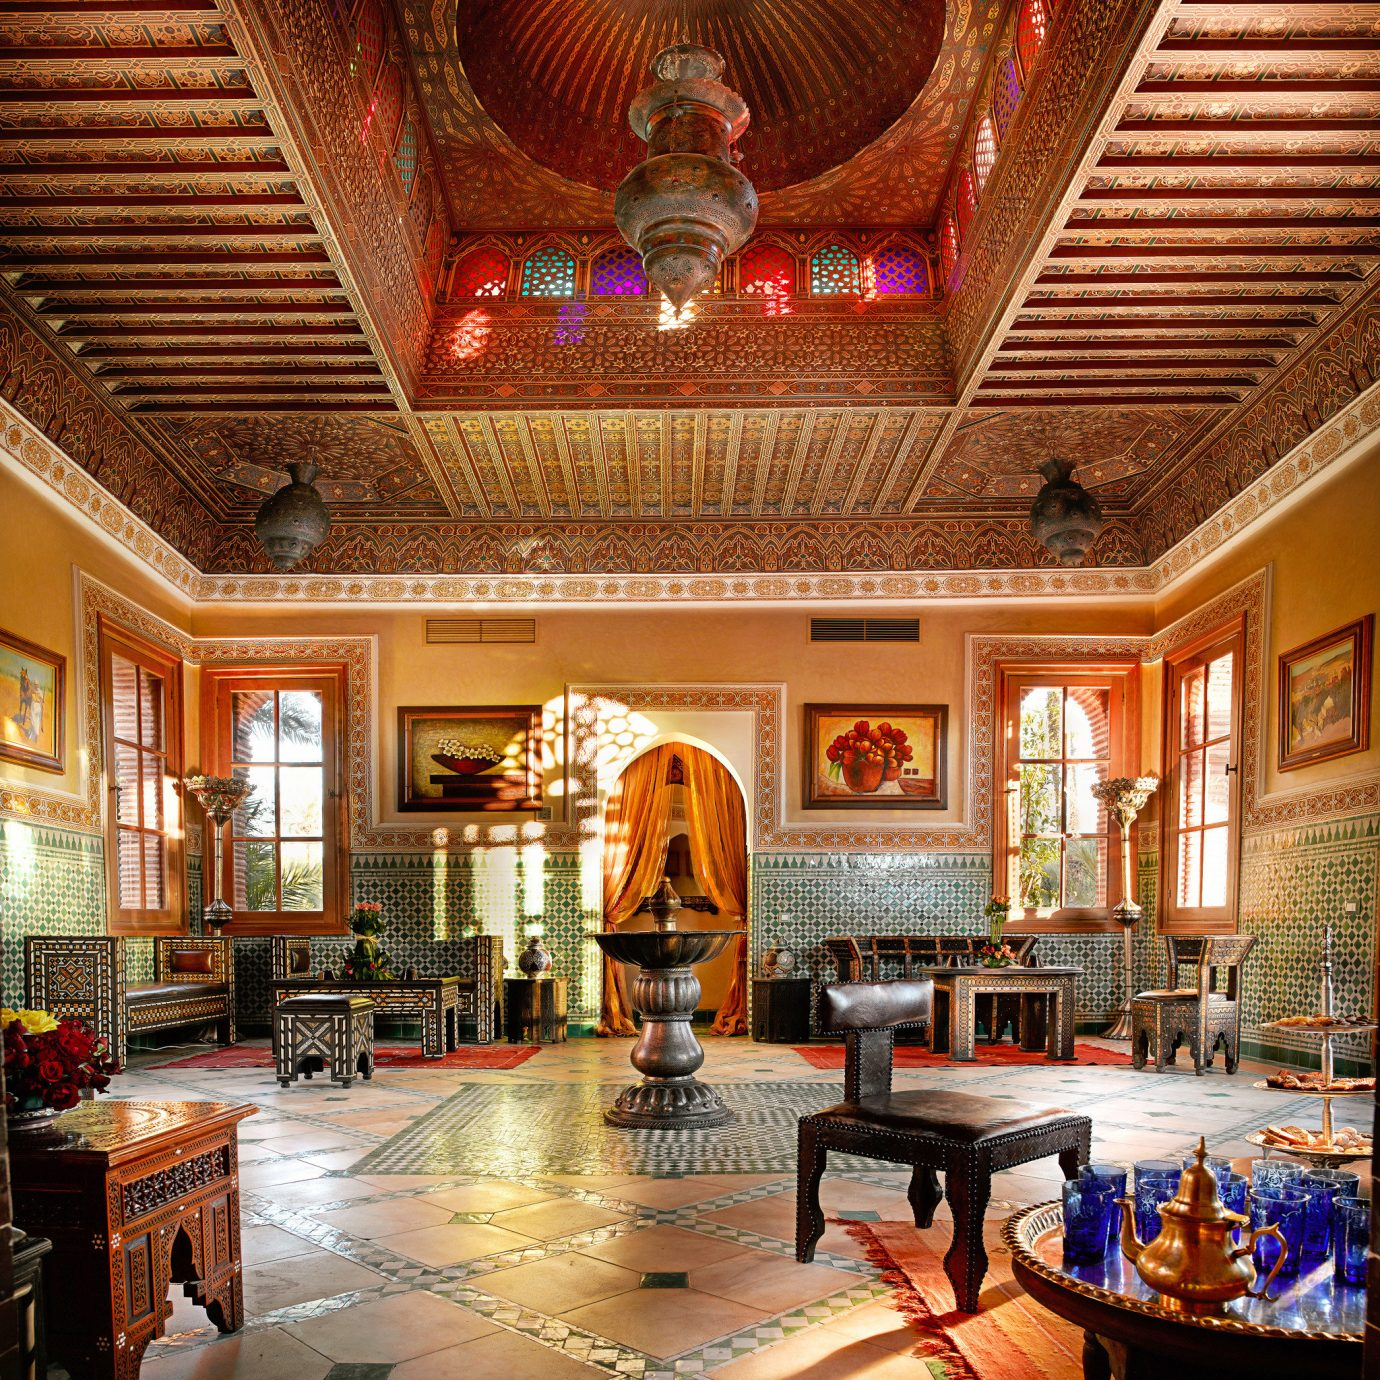 Lobby Rustic building palace